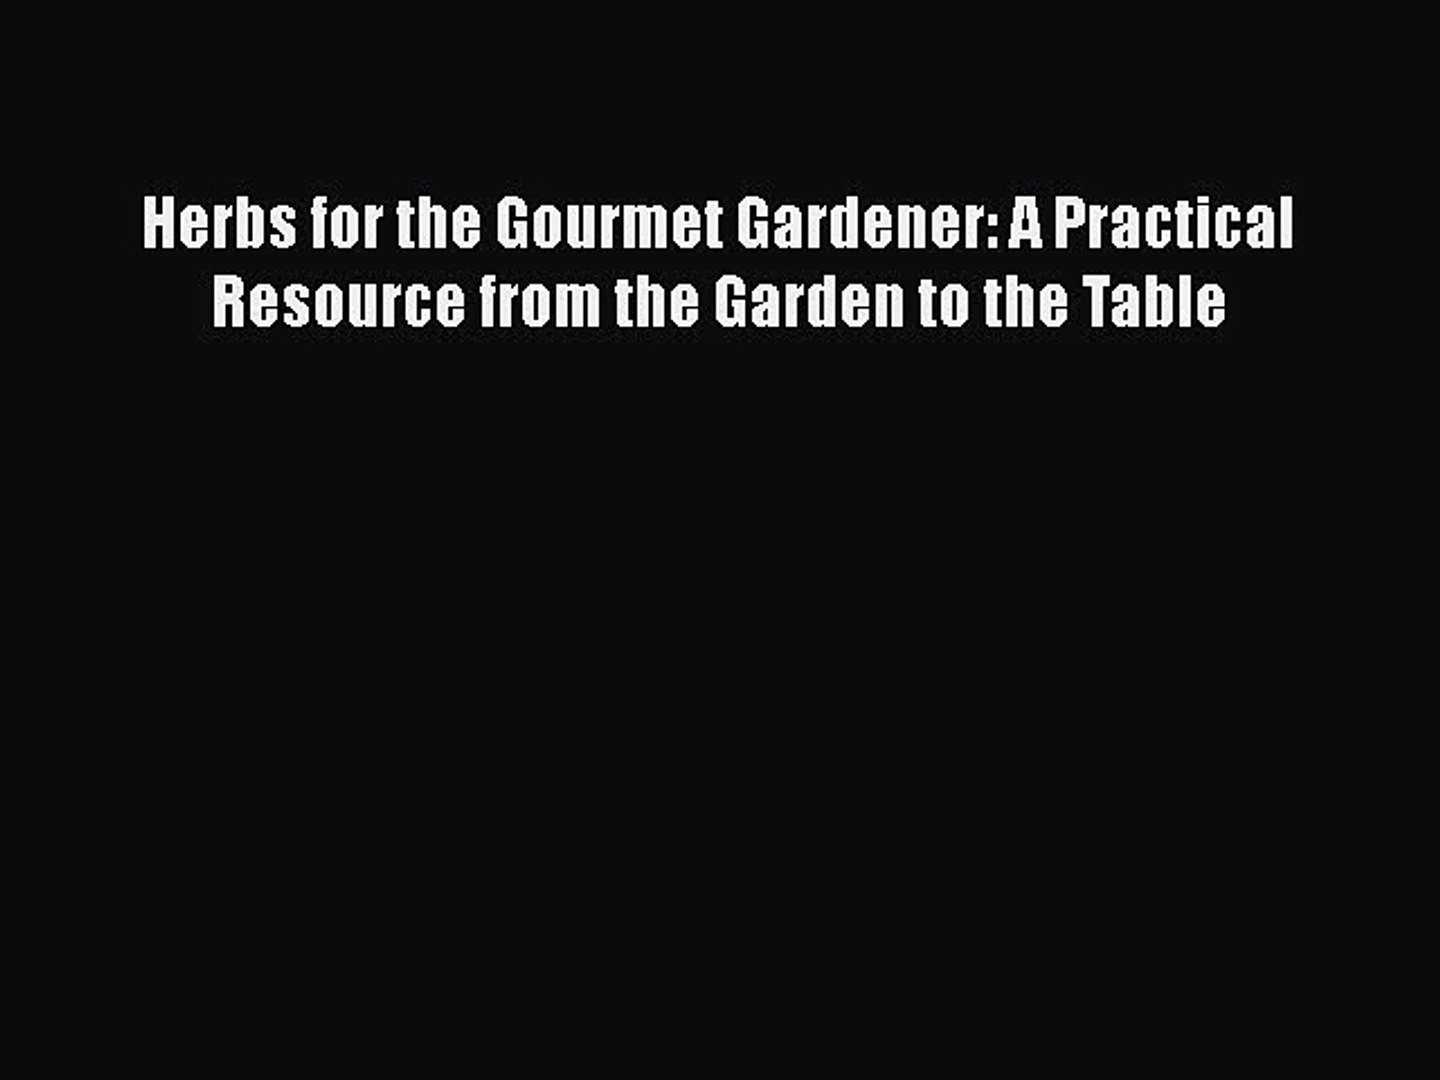 [DONWLOAD] Herbs for the Gourmet Gardener: A Practical Resource from the Garden to the Table